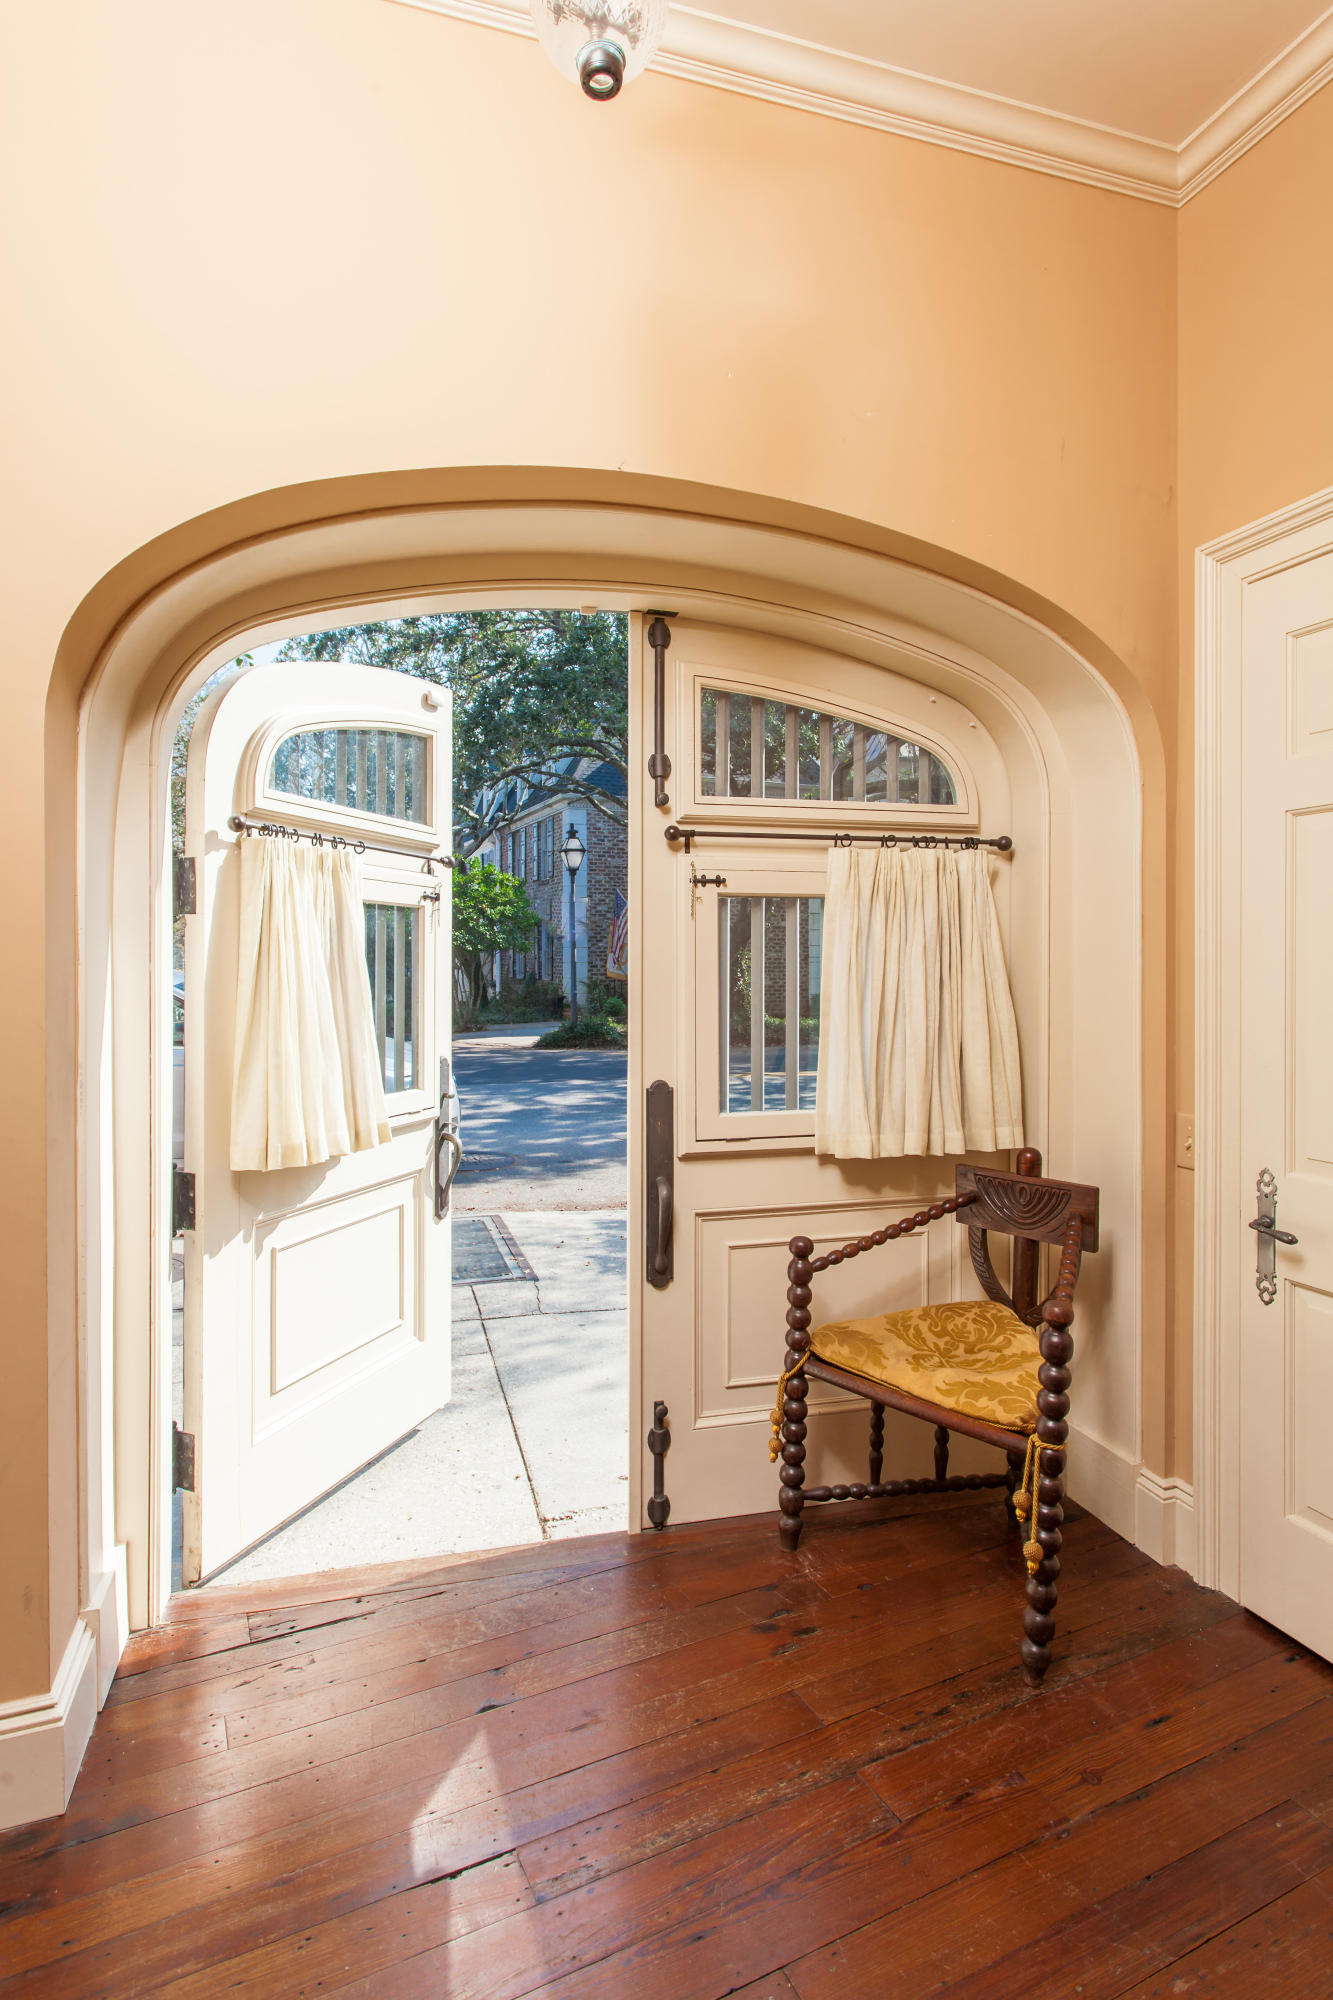 Home for sale 91 Bay Street, South Of Broad, Downtown Charleston, SC